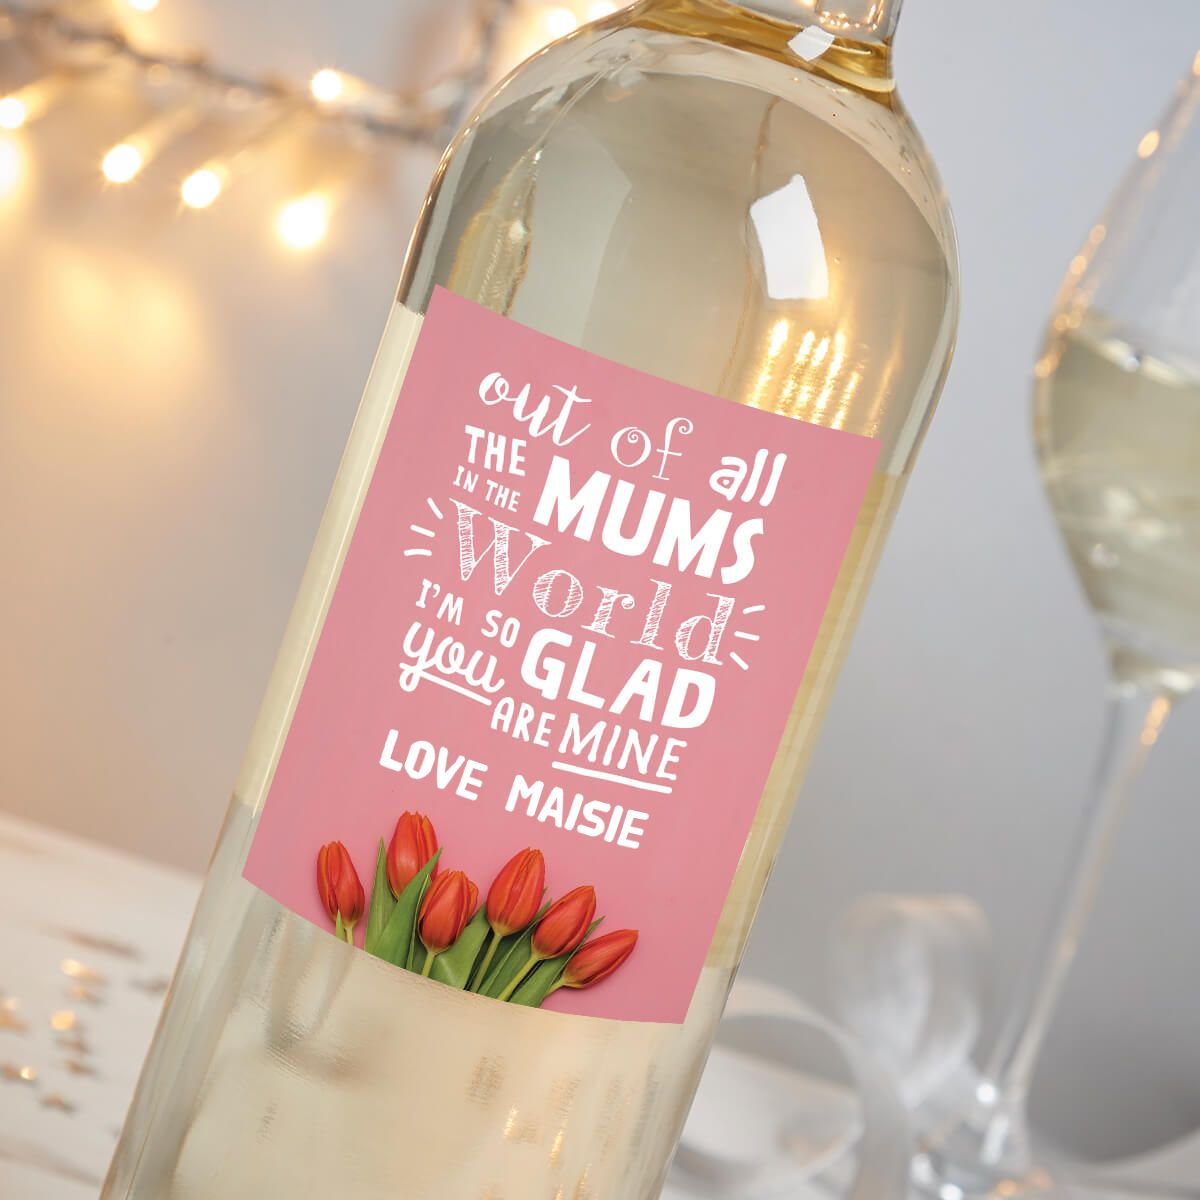 77d0dcd9517 Personalised Gifts For Mum | Special Gift Ideas For Mum | GiftPup.com